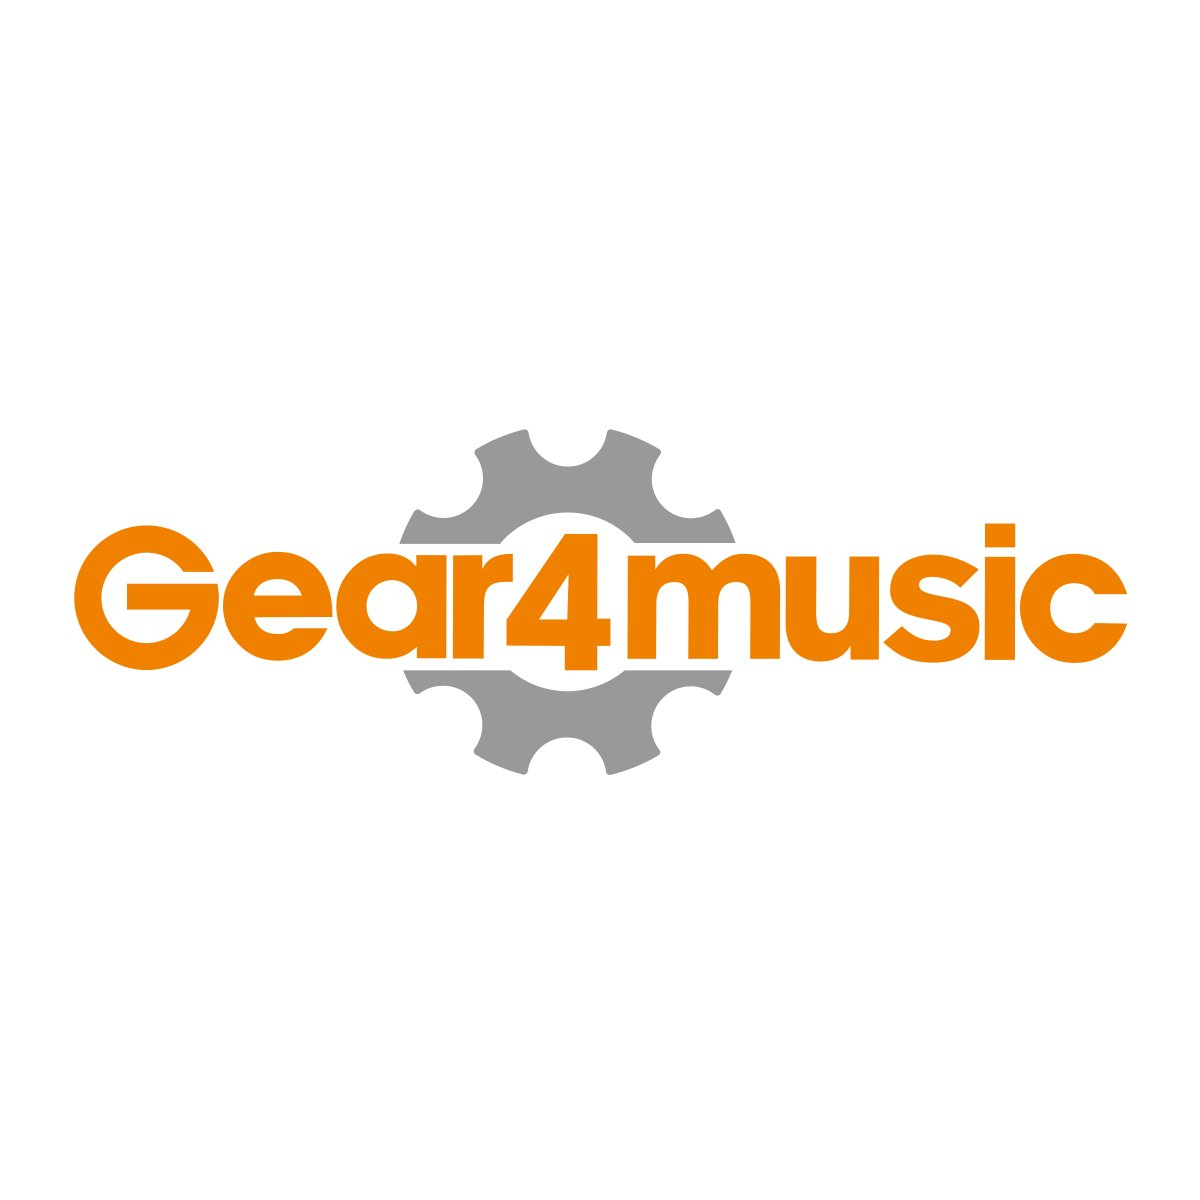 61 tasti tastiera ABS Custodia di Gear4music